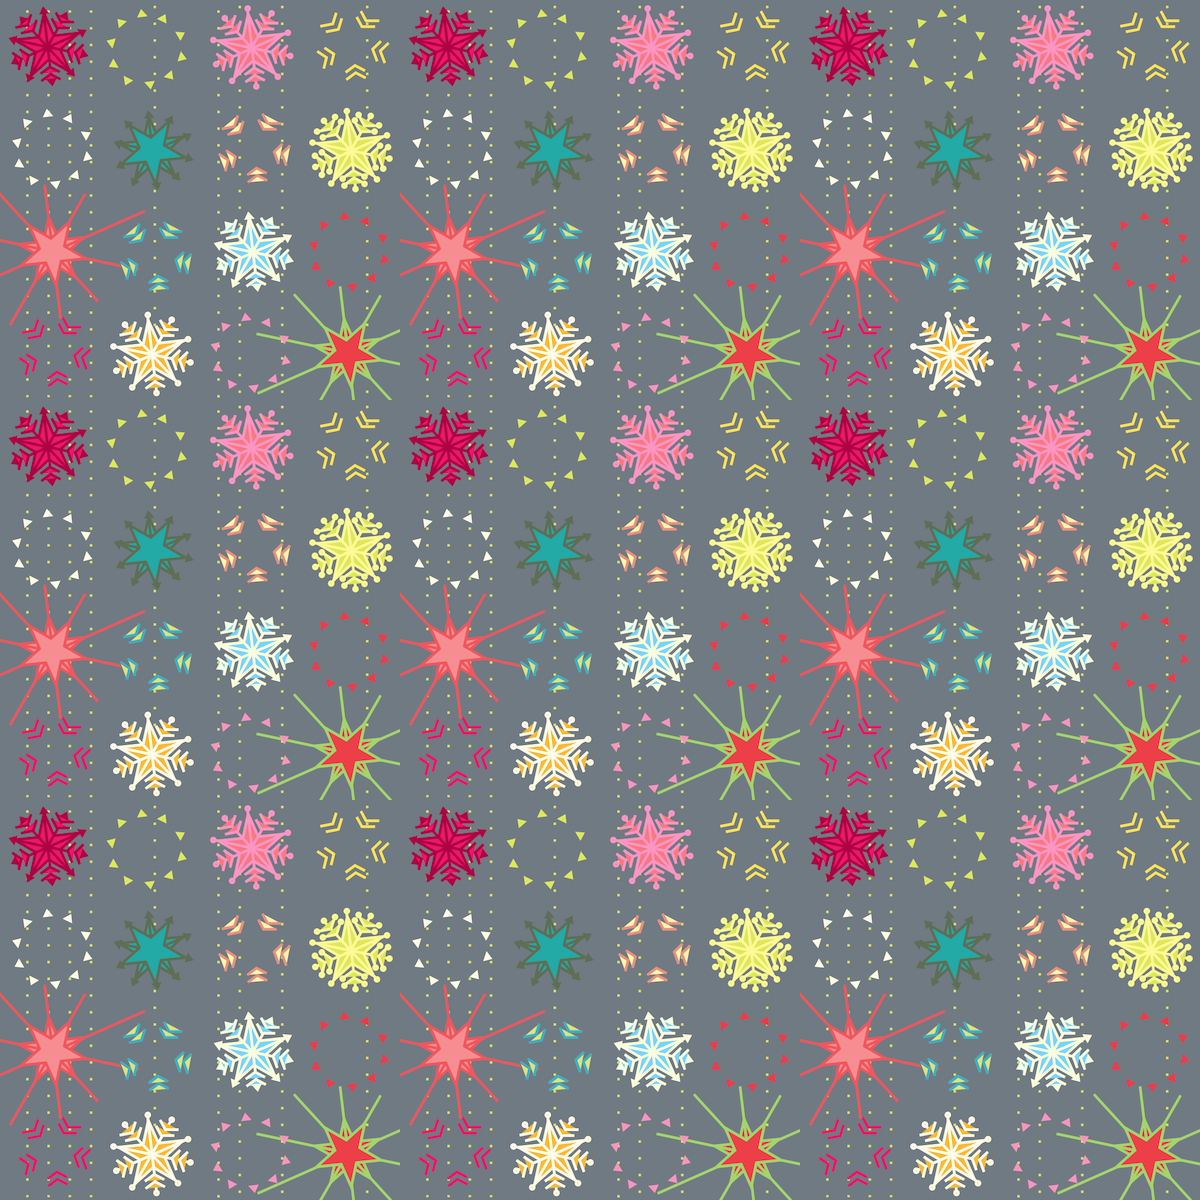 Free Printable Christmas Paper Fresh Free Digital Holiday Scrappbooking Paper Snow Wonder No2